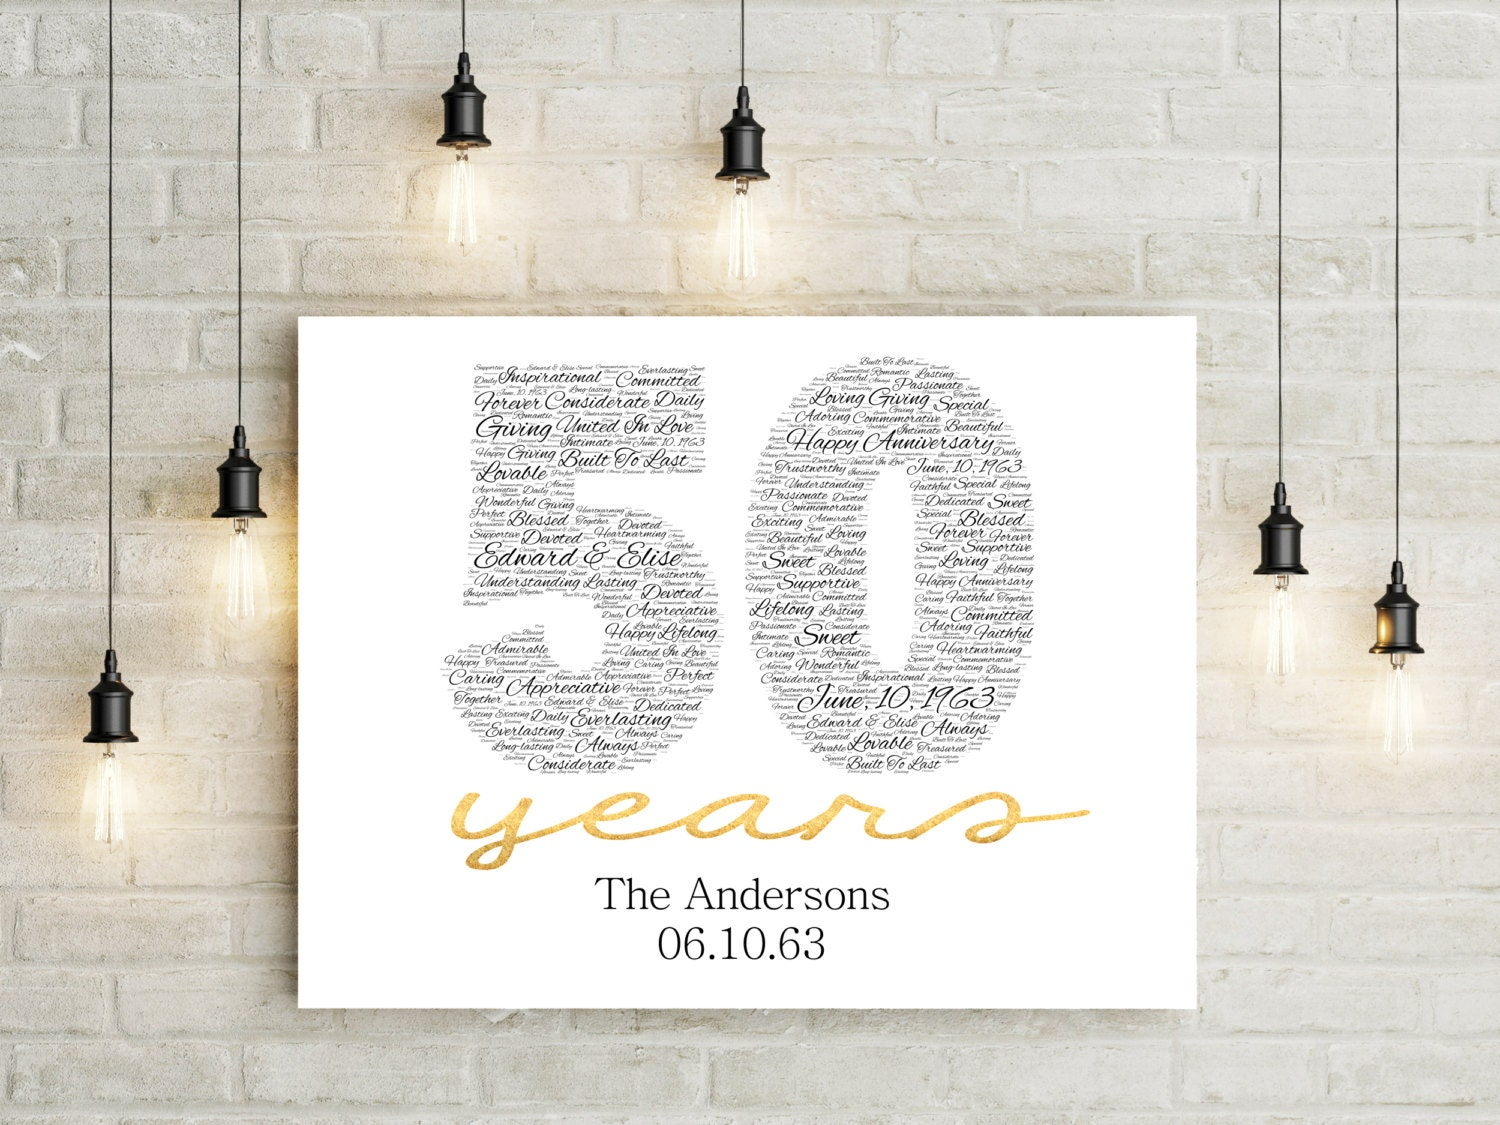 Golden Wedding Gift Ideas For Parents: 50th Anniversary Gift CANVAS Golden Wedding Anniversary Gift